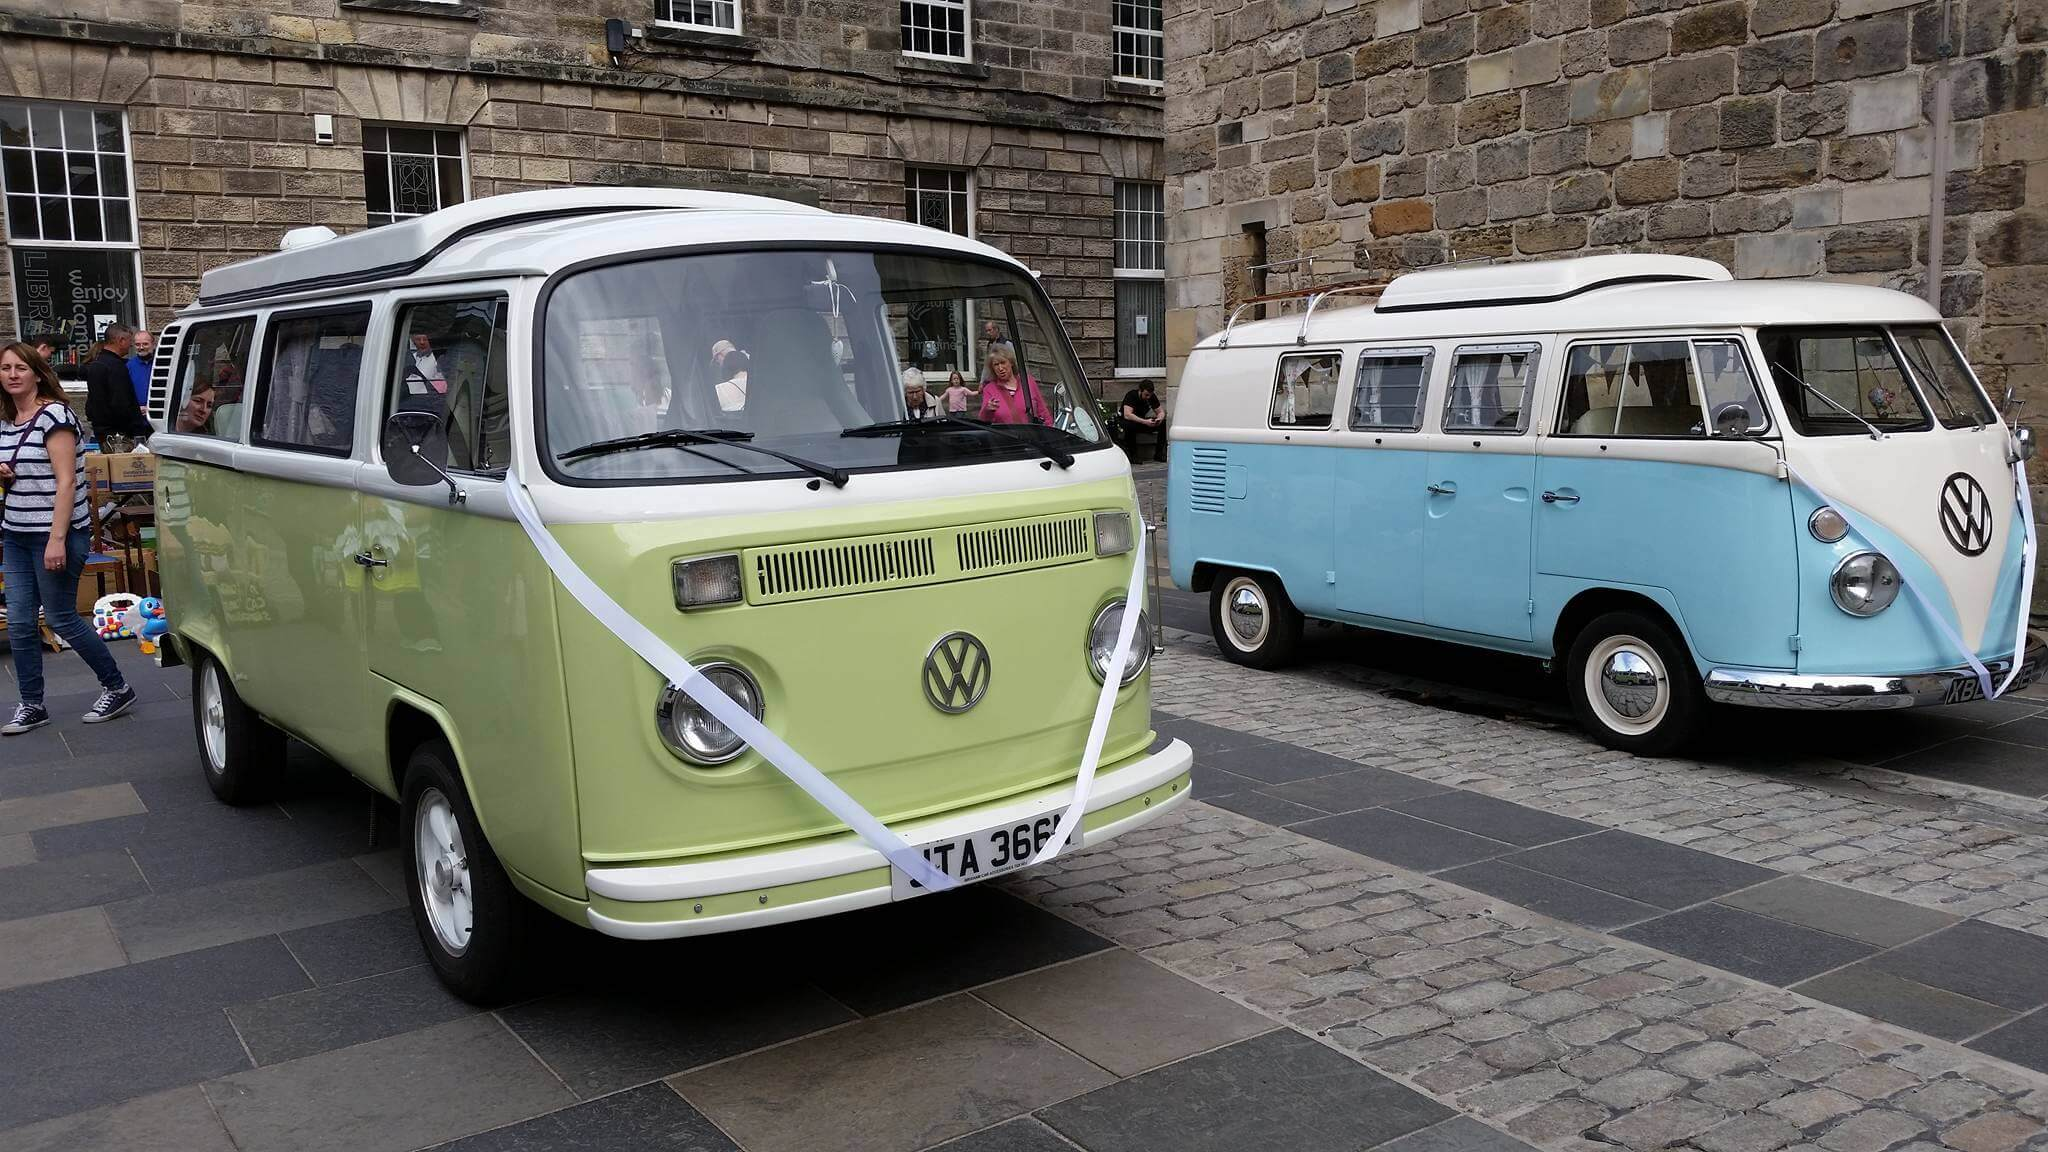 VW-wedding-campervan-scotland-8.jpg